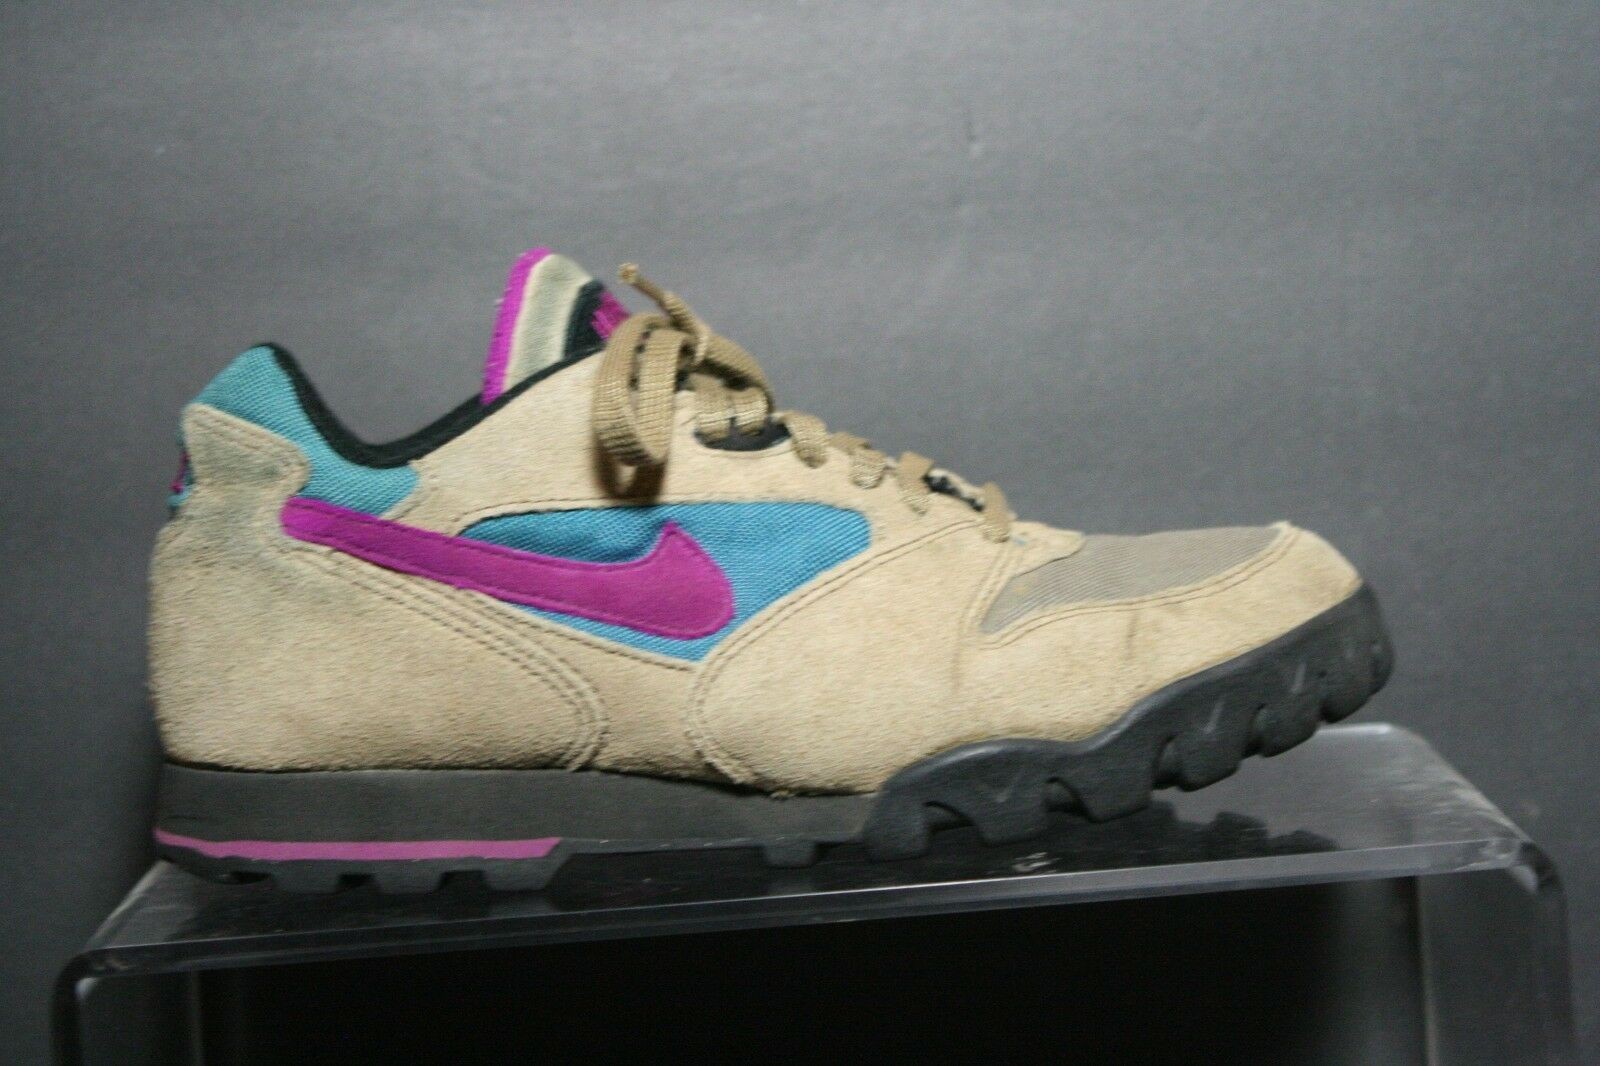 Nike Caldera Lo Hiking Shoe 1993 VTG OG Women 9 Trail Multi Purple Teal Ath Hip